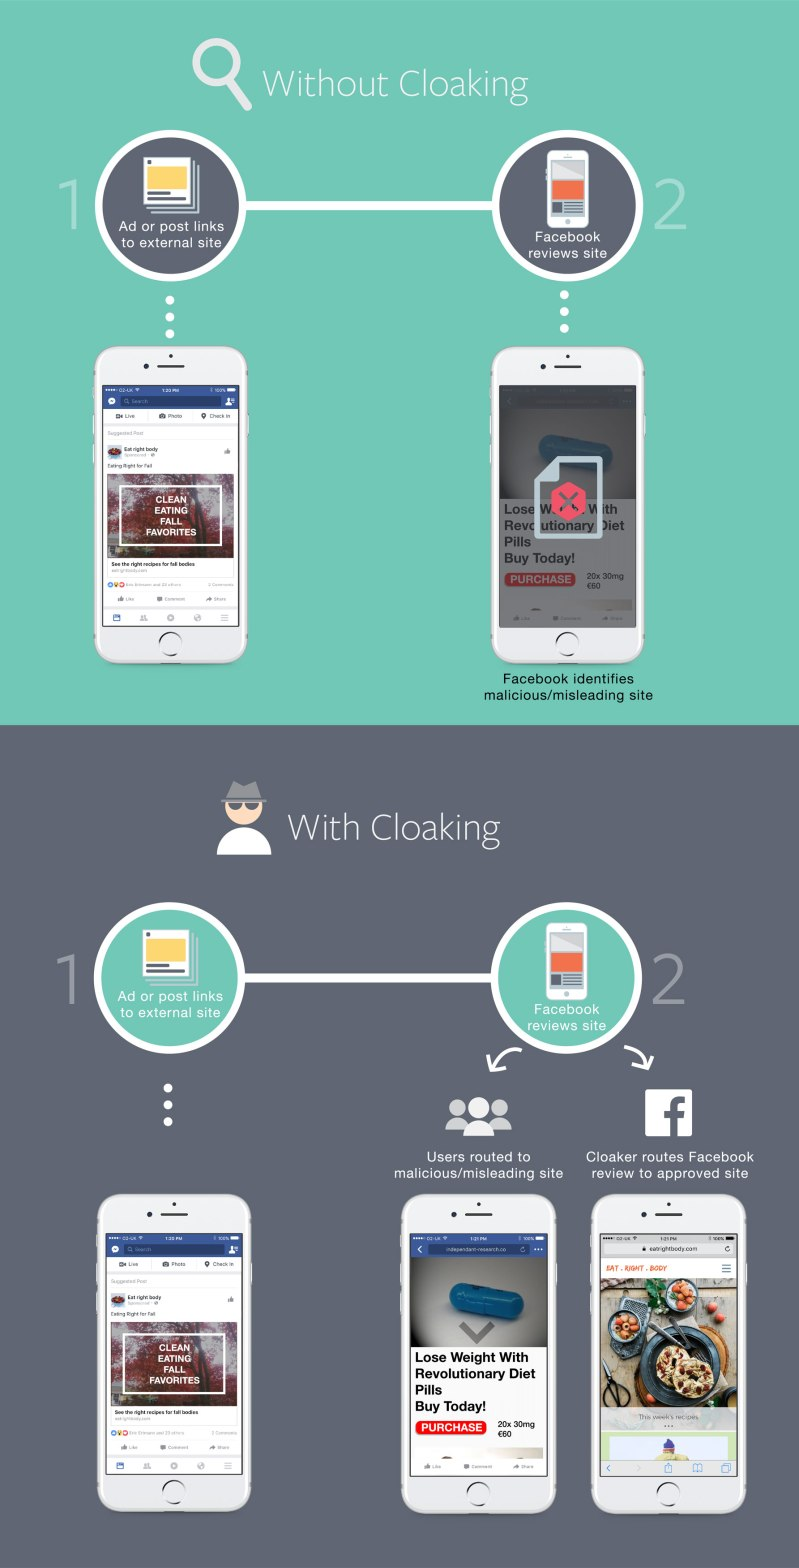 Facebook Cloaking Infographic